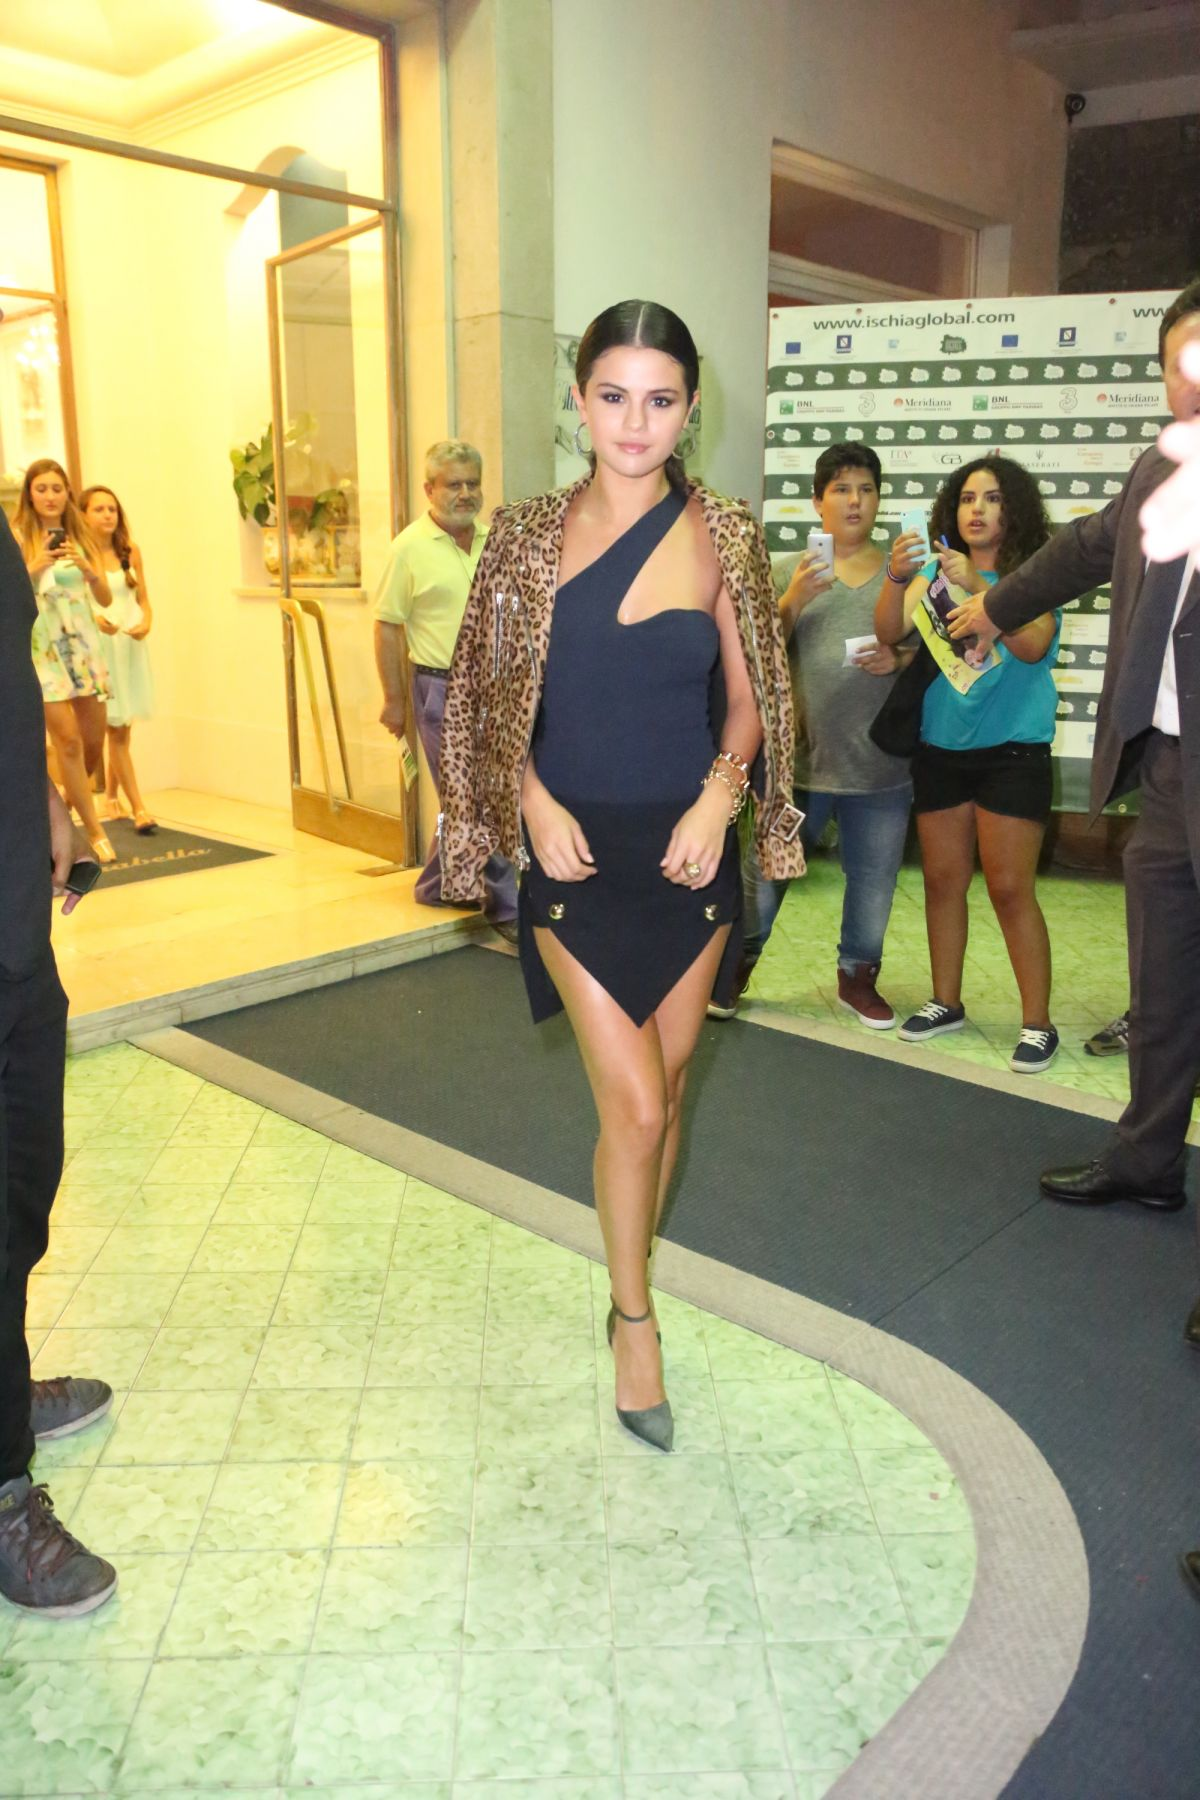 SELENA GOMEZ at Rudderless Premiere in Ischia